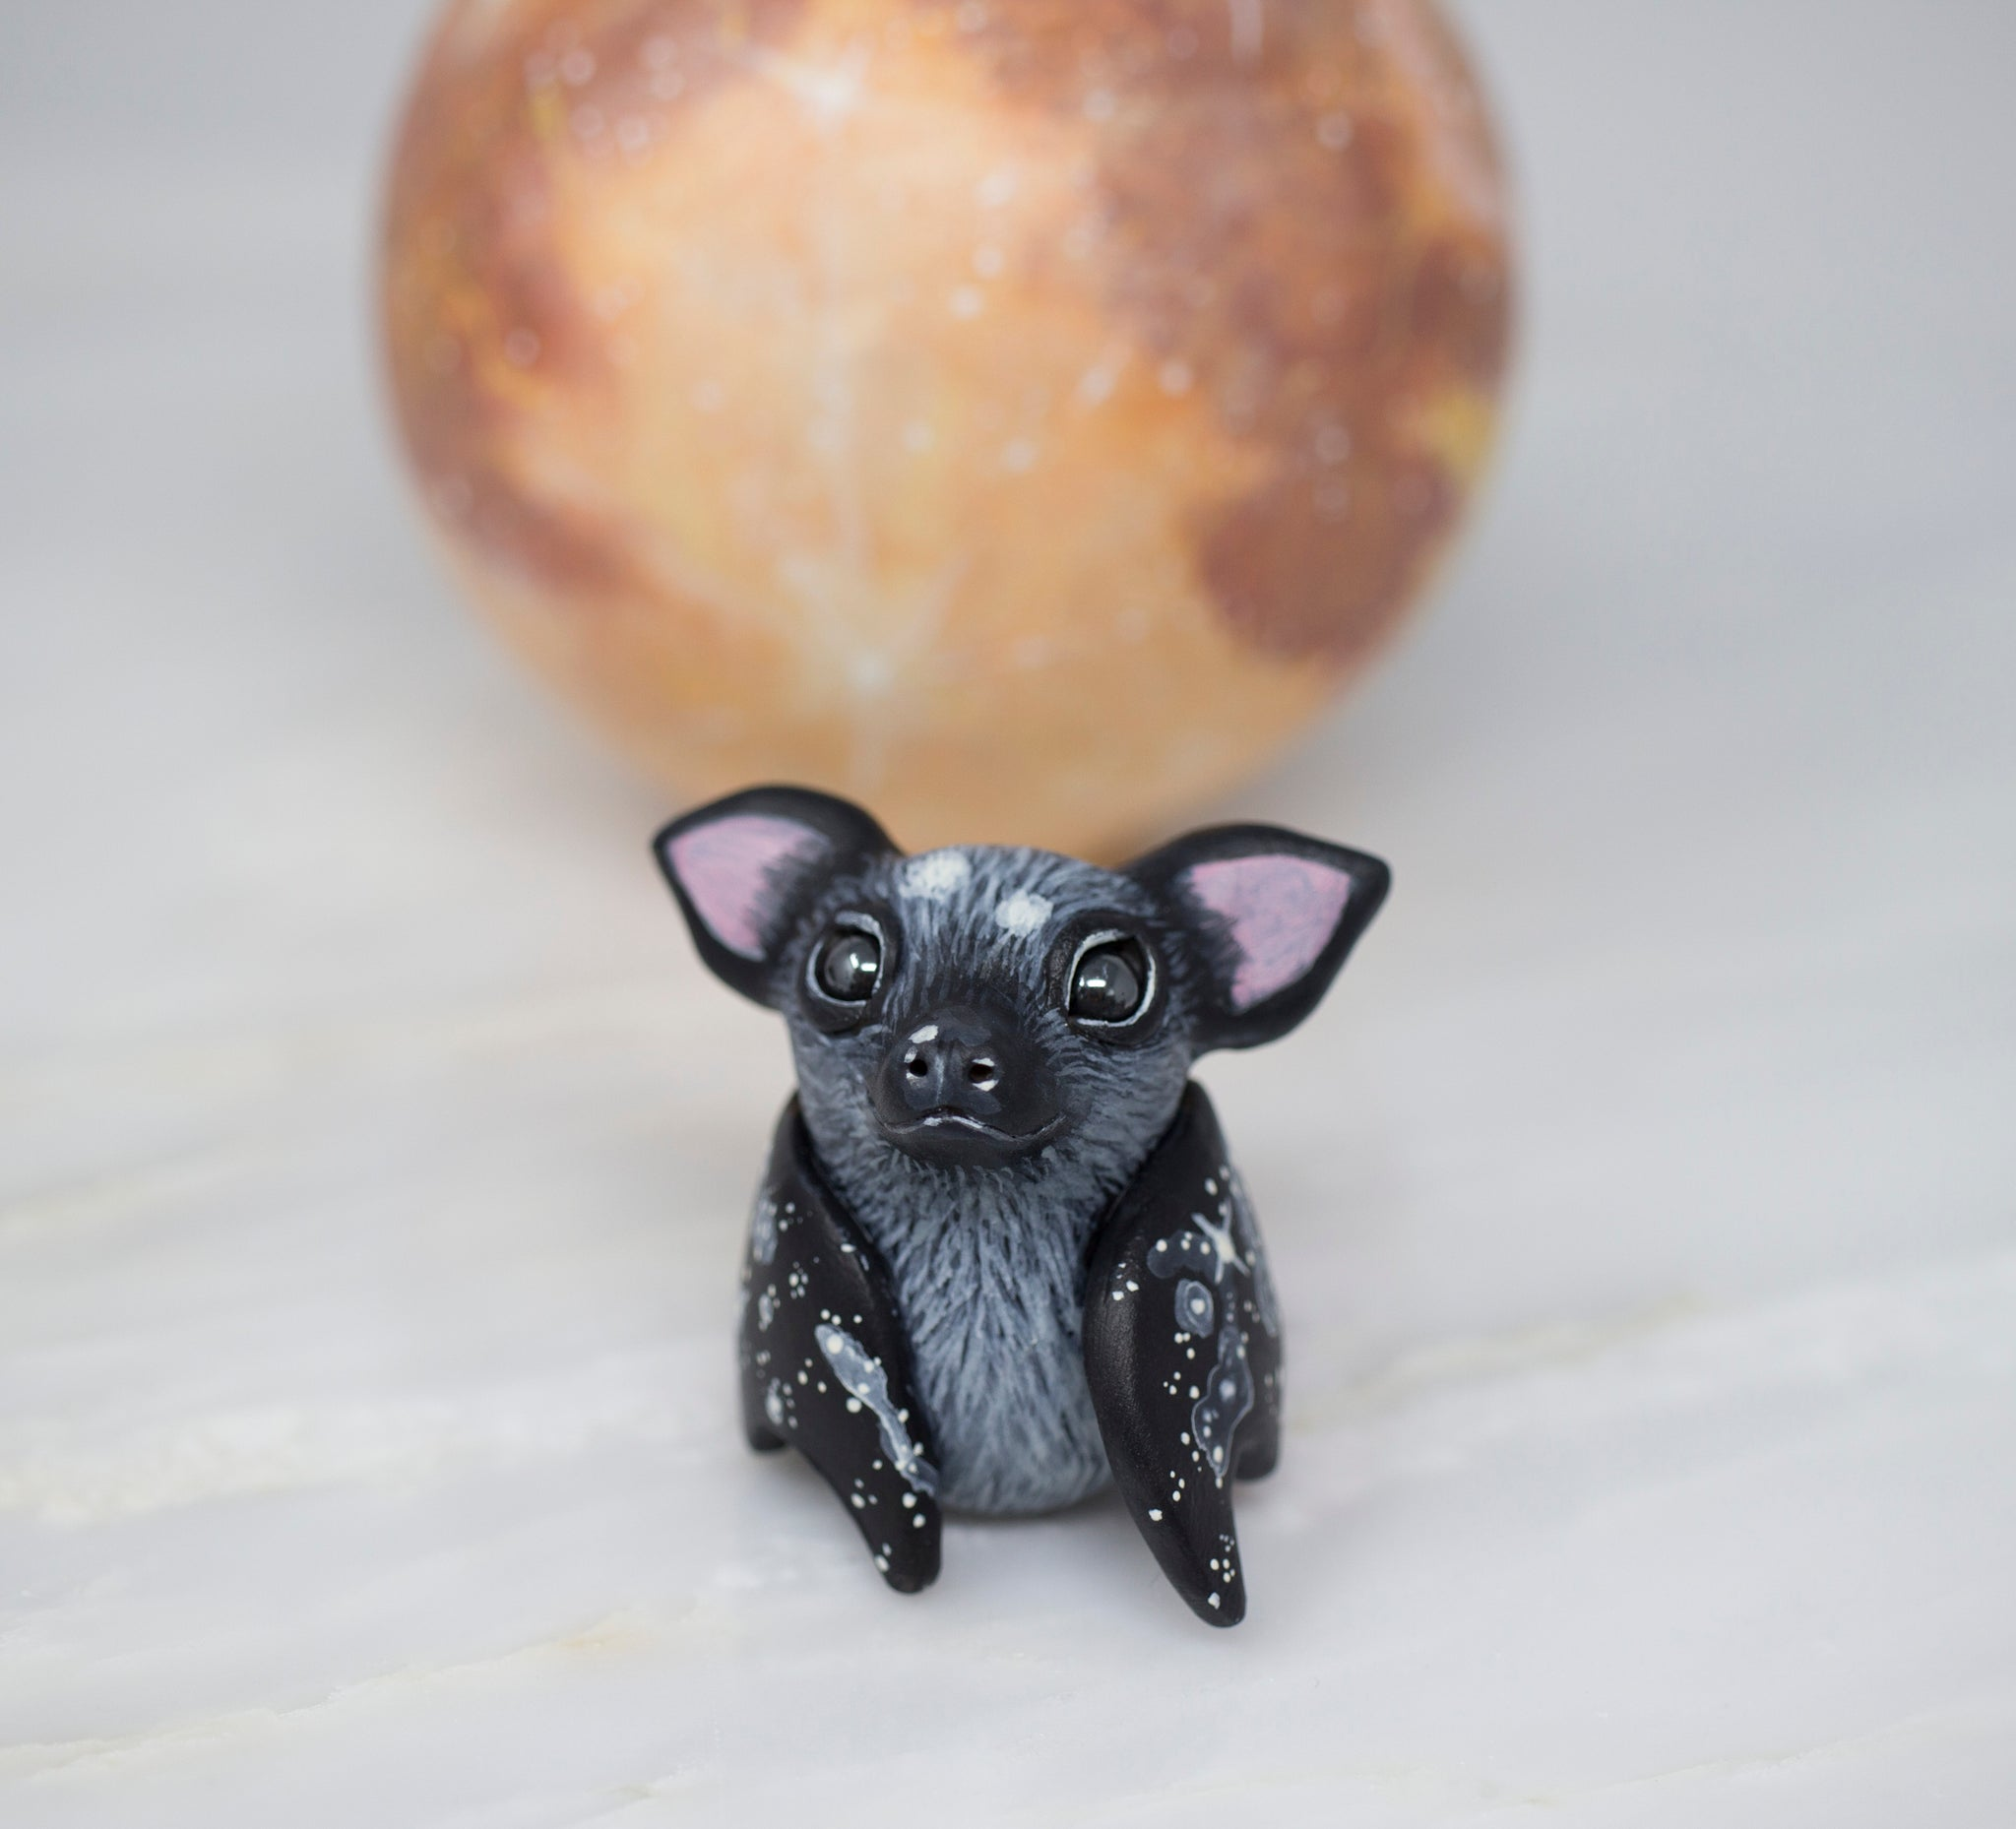 Black Bat Figurine, Spotted